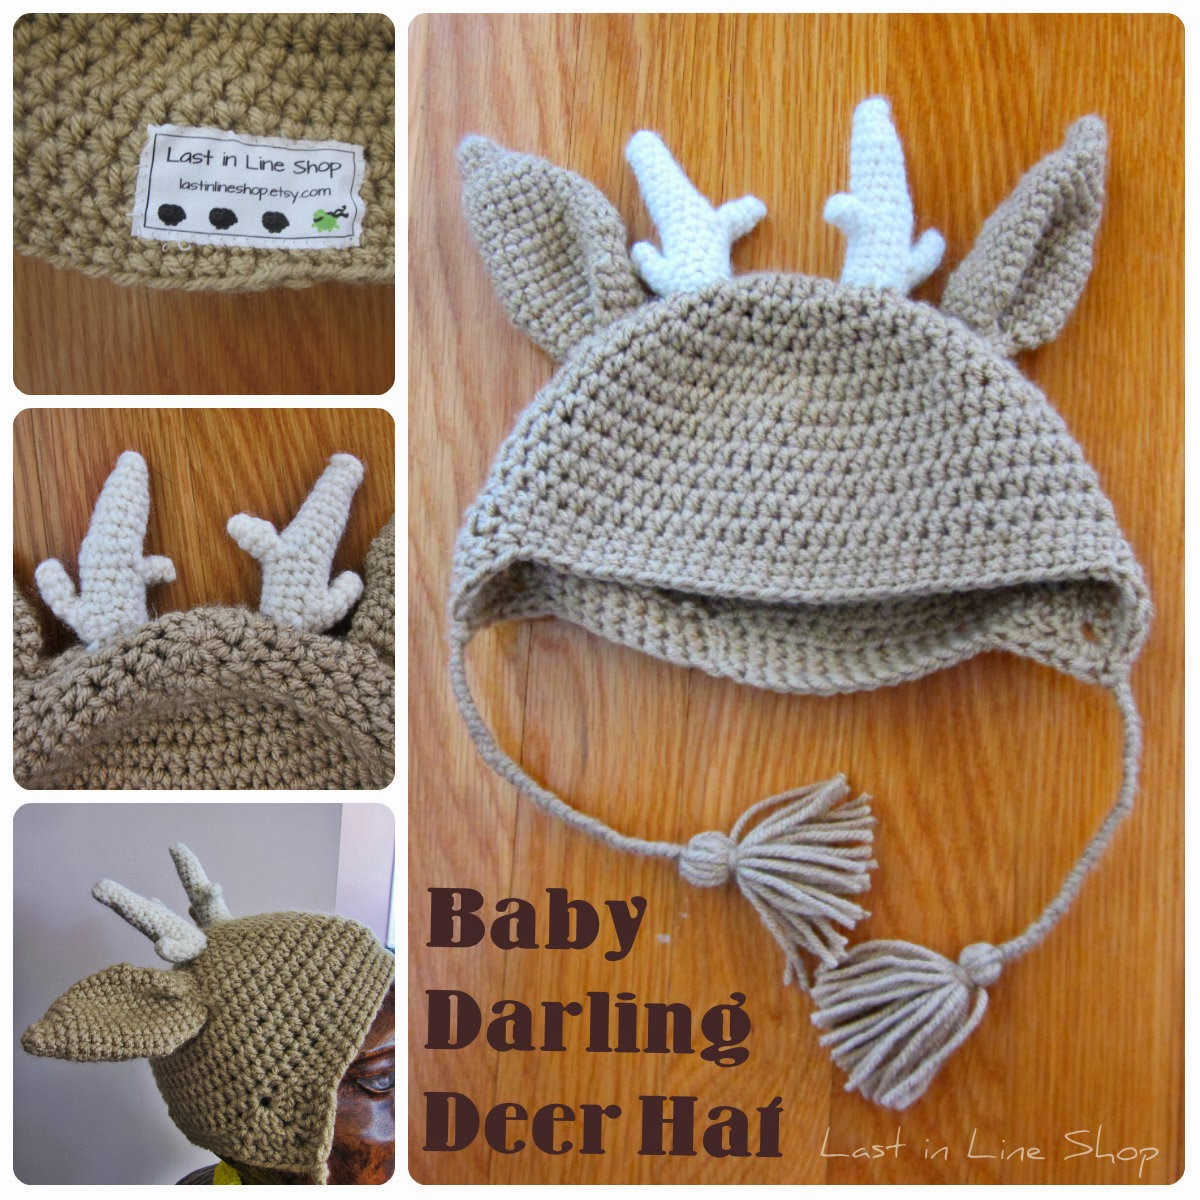 Last in Line Shop: Baby Darling Deer Hat